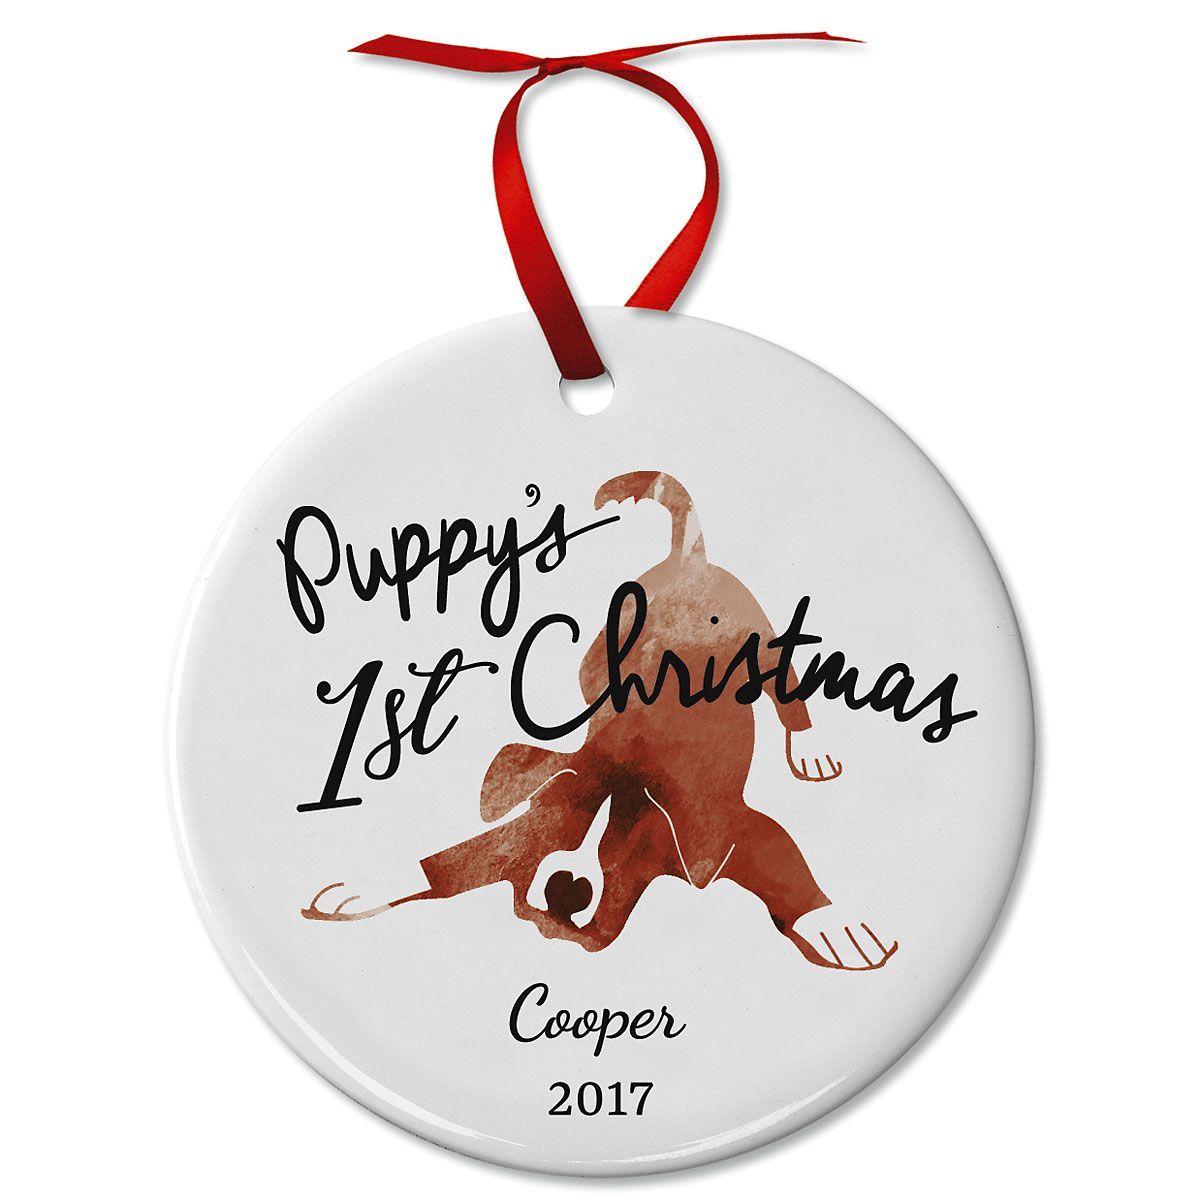 Puppy's First Christmas Ceramic Personalized Christmas Ornaments